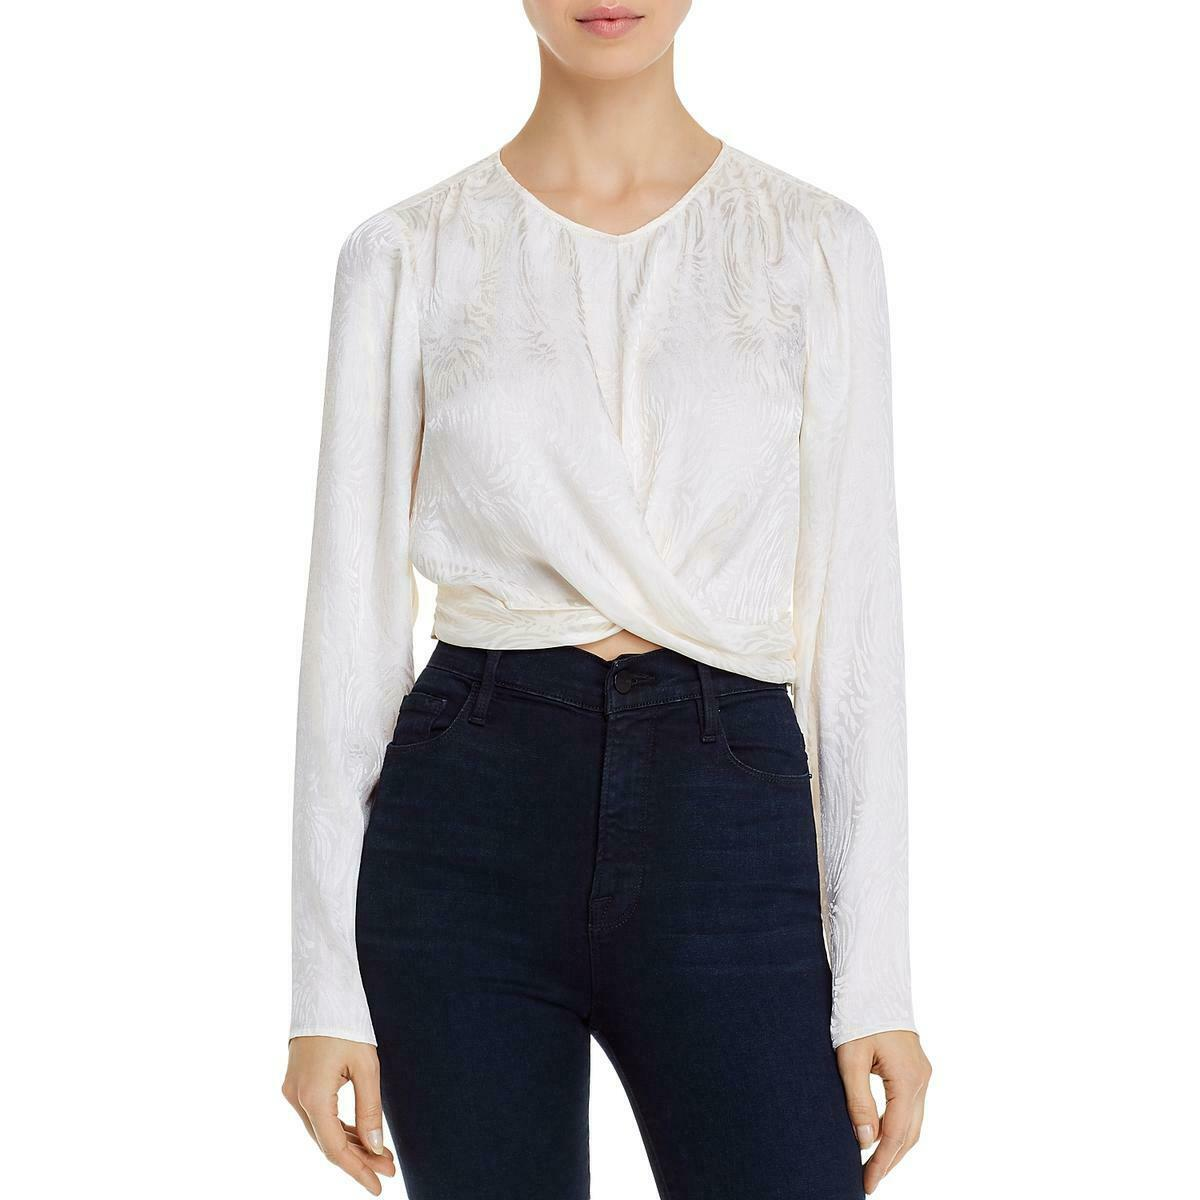 Guess Womens Blouse Classic White Ivory Size XL Cropped Evolette Twist $79- 287